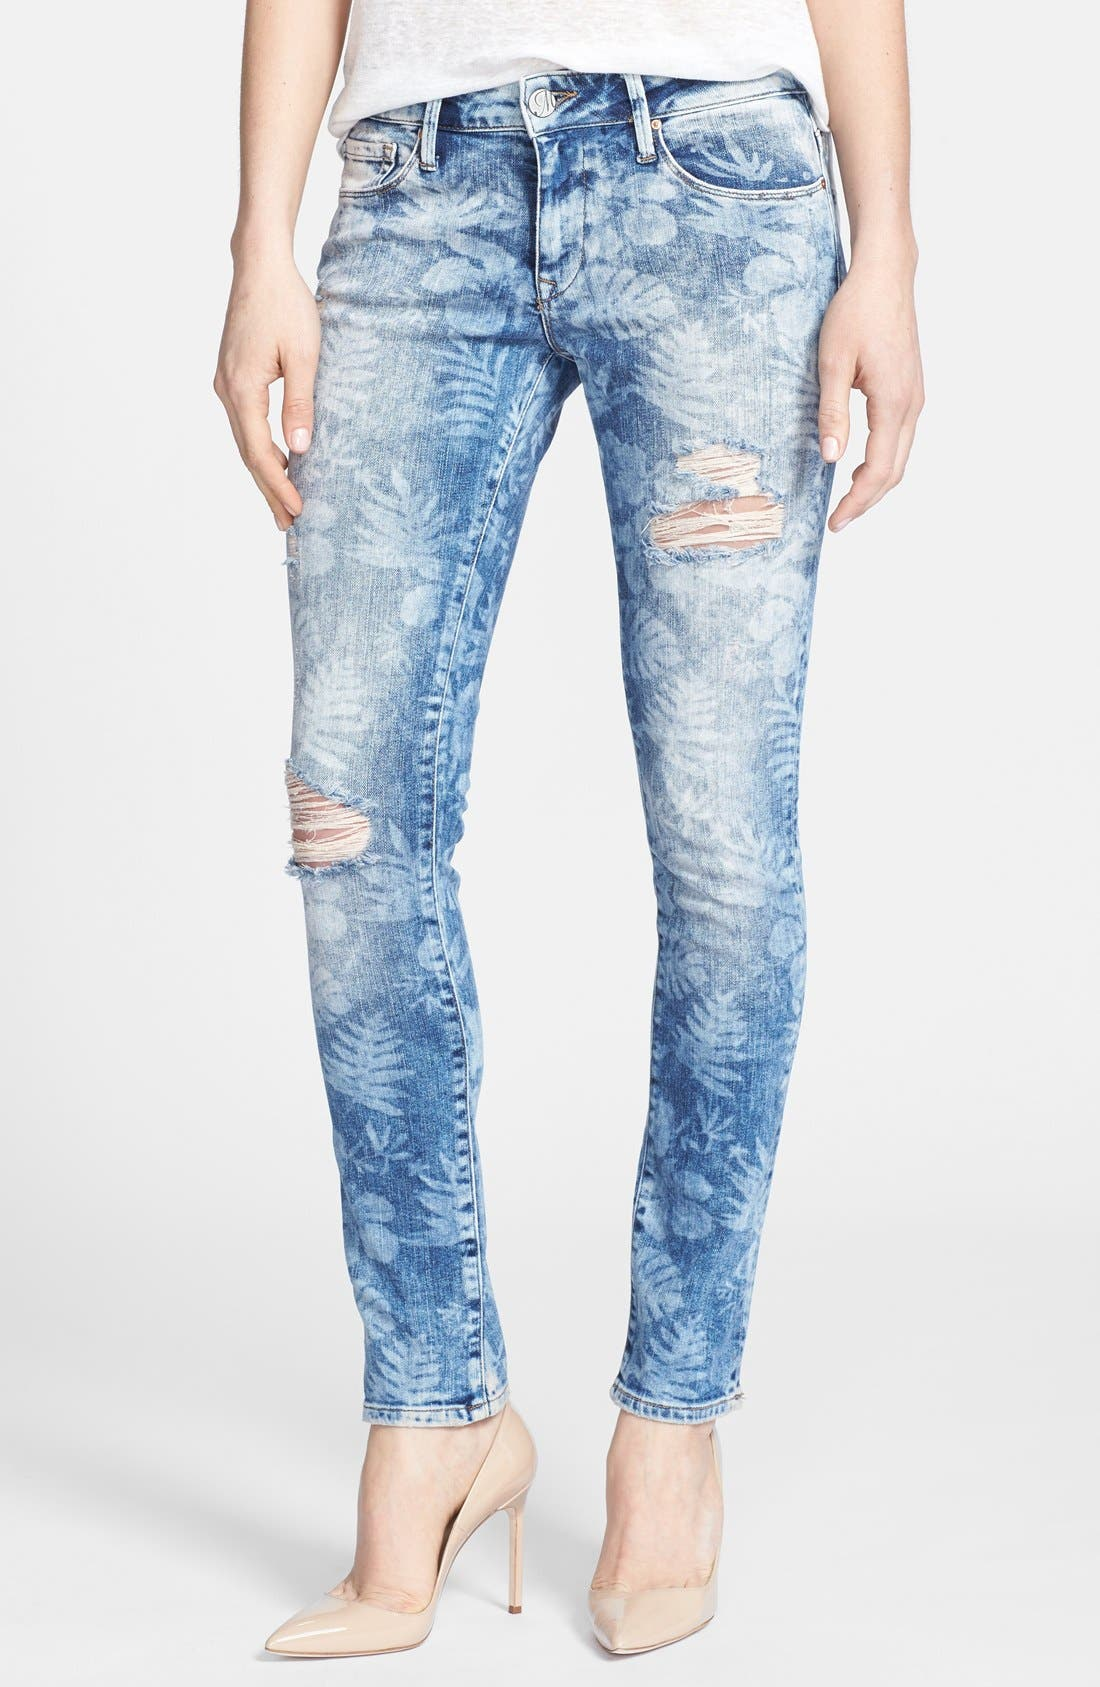 Alternate Image 1 Selected - Mavi Jeans 'Alexa Vintage' Distressed Stretch Skinny Jeans (Artist Vintage)